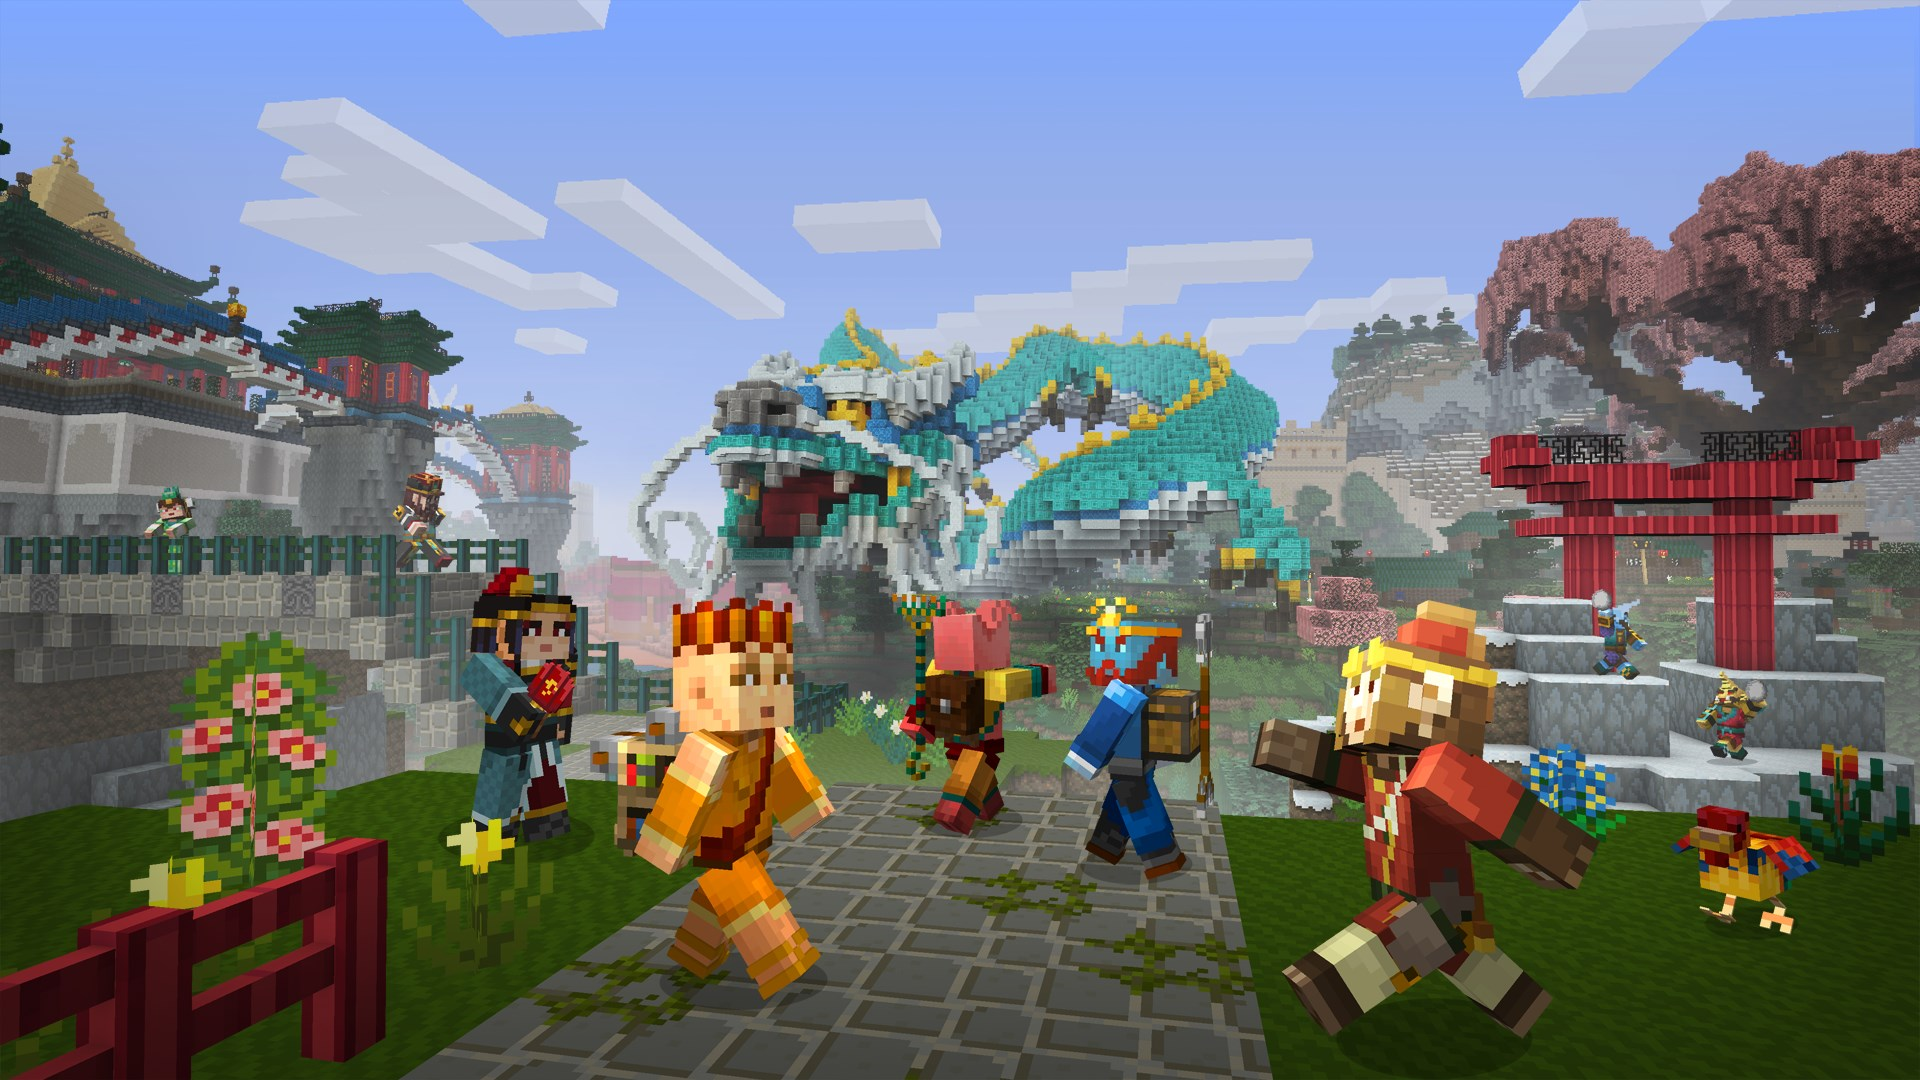 Minecraft closes in on 300m registered accounts in China